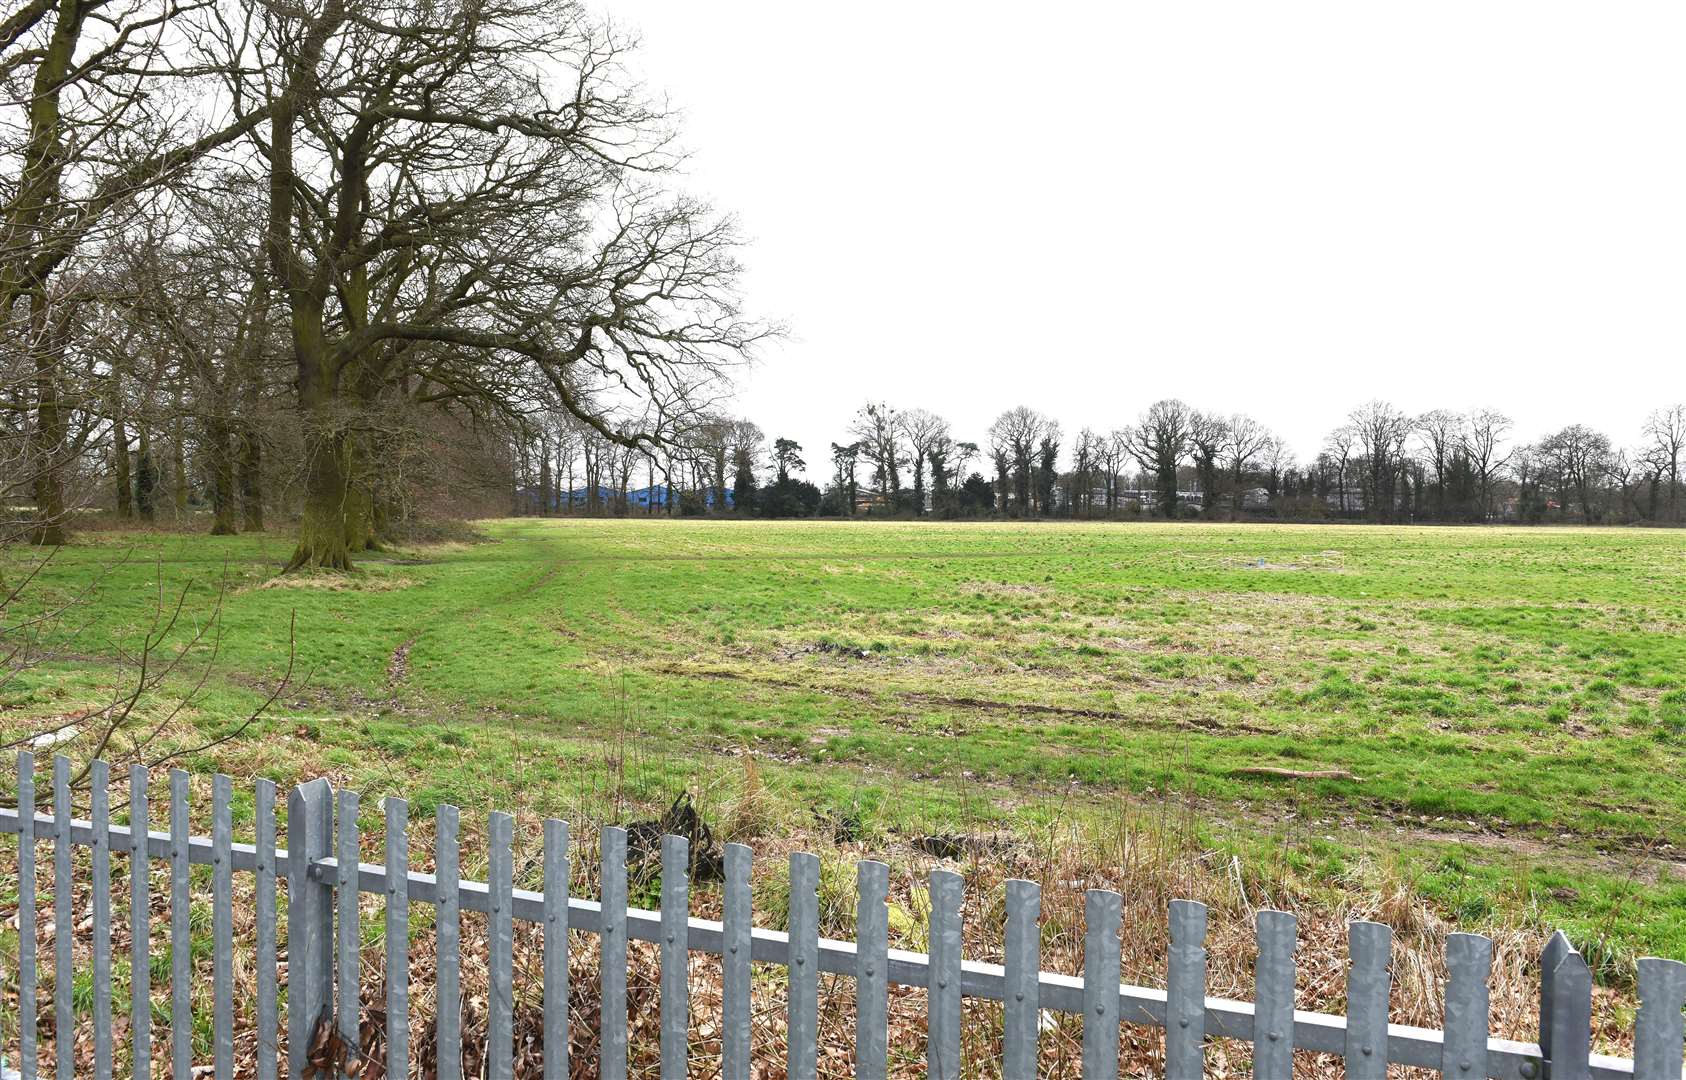 GV Picture of Land which is being Proposed for Possible New Housing Development for the Gaywood Area...Land between King's Lynn Academy Site off Queen Mary Road/Parkway Gaywood and Howard Junior School. (29878391)